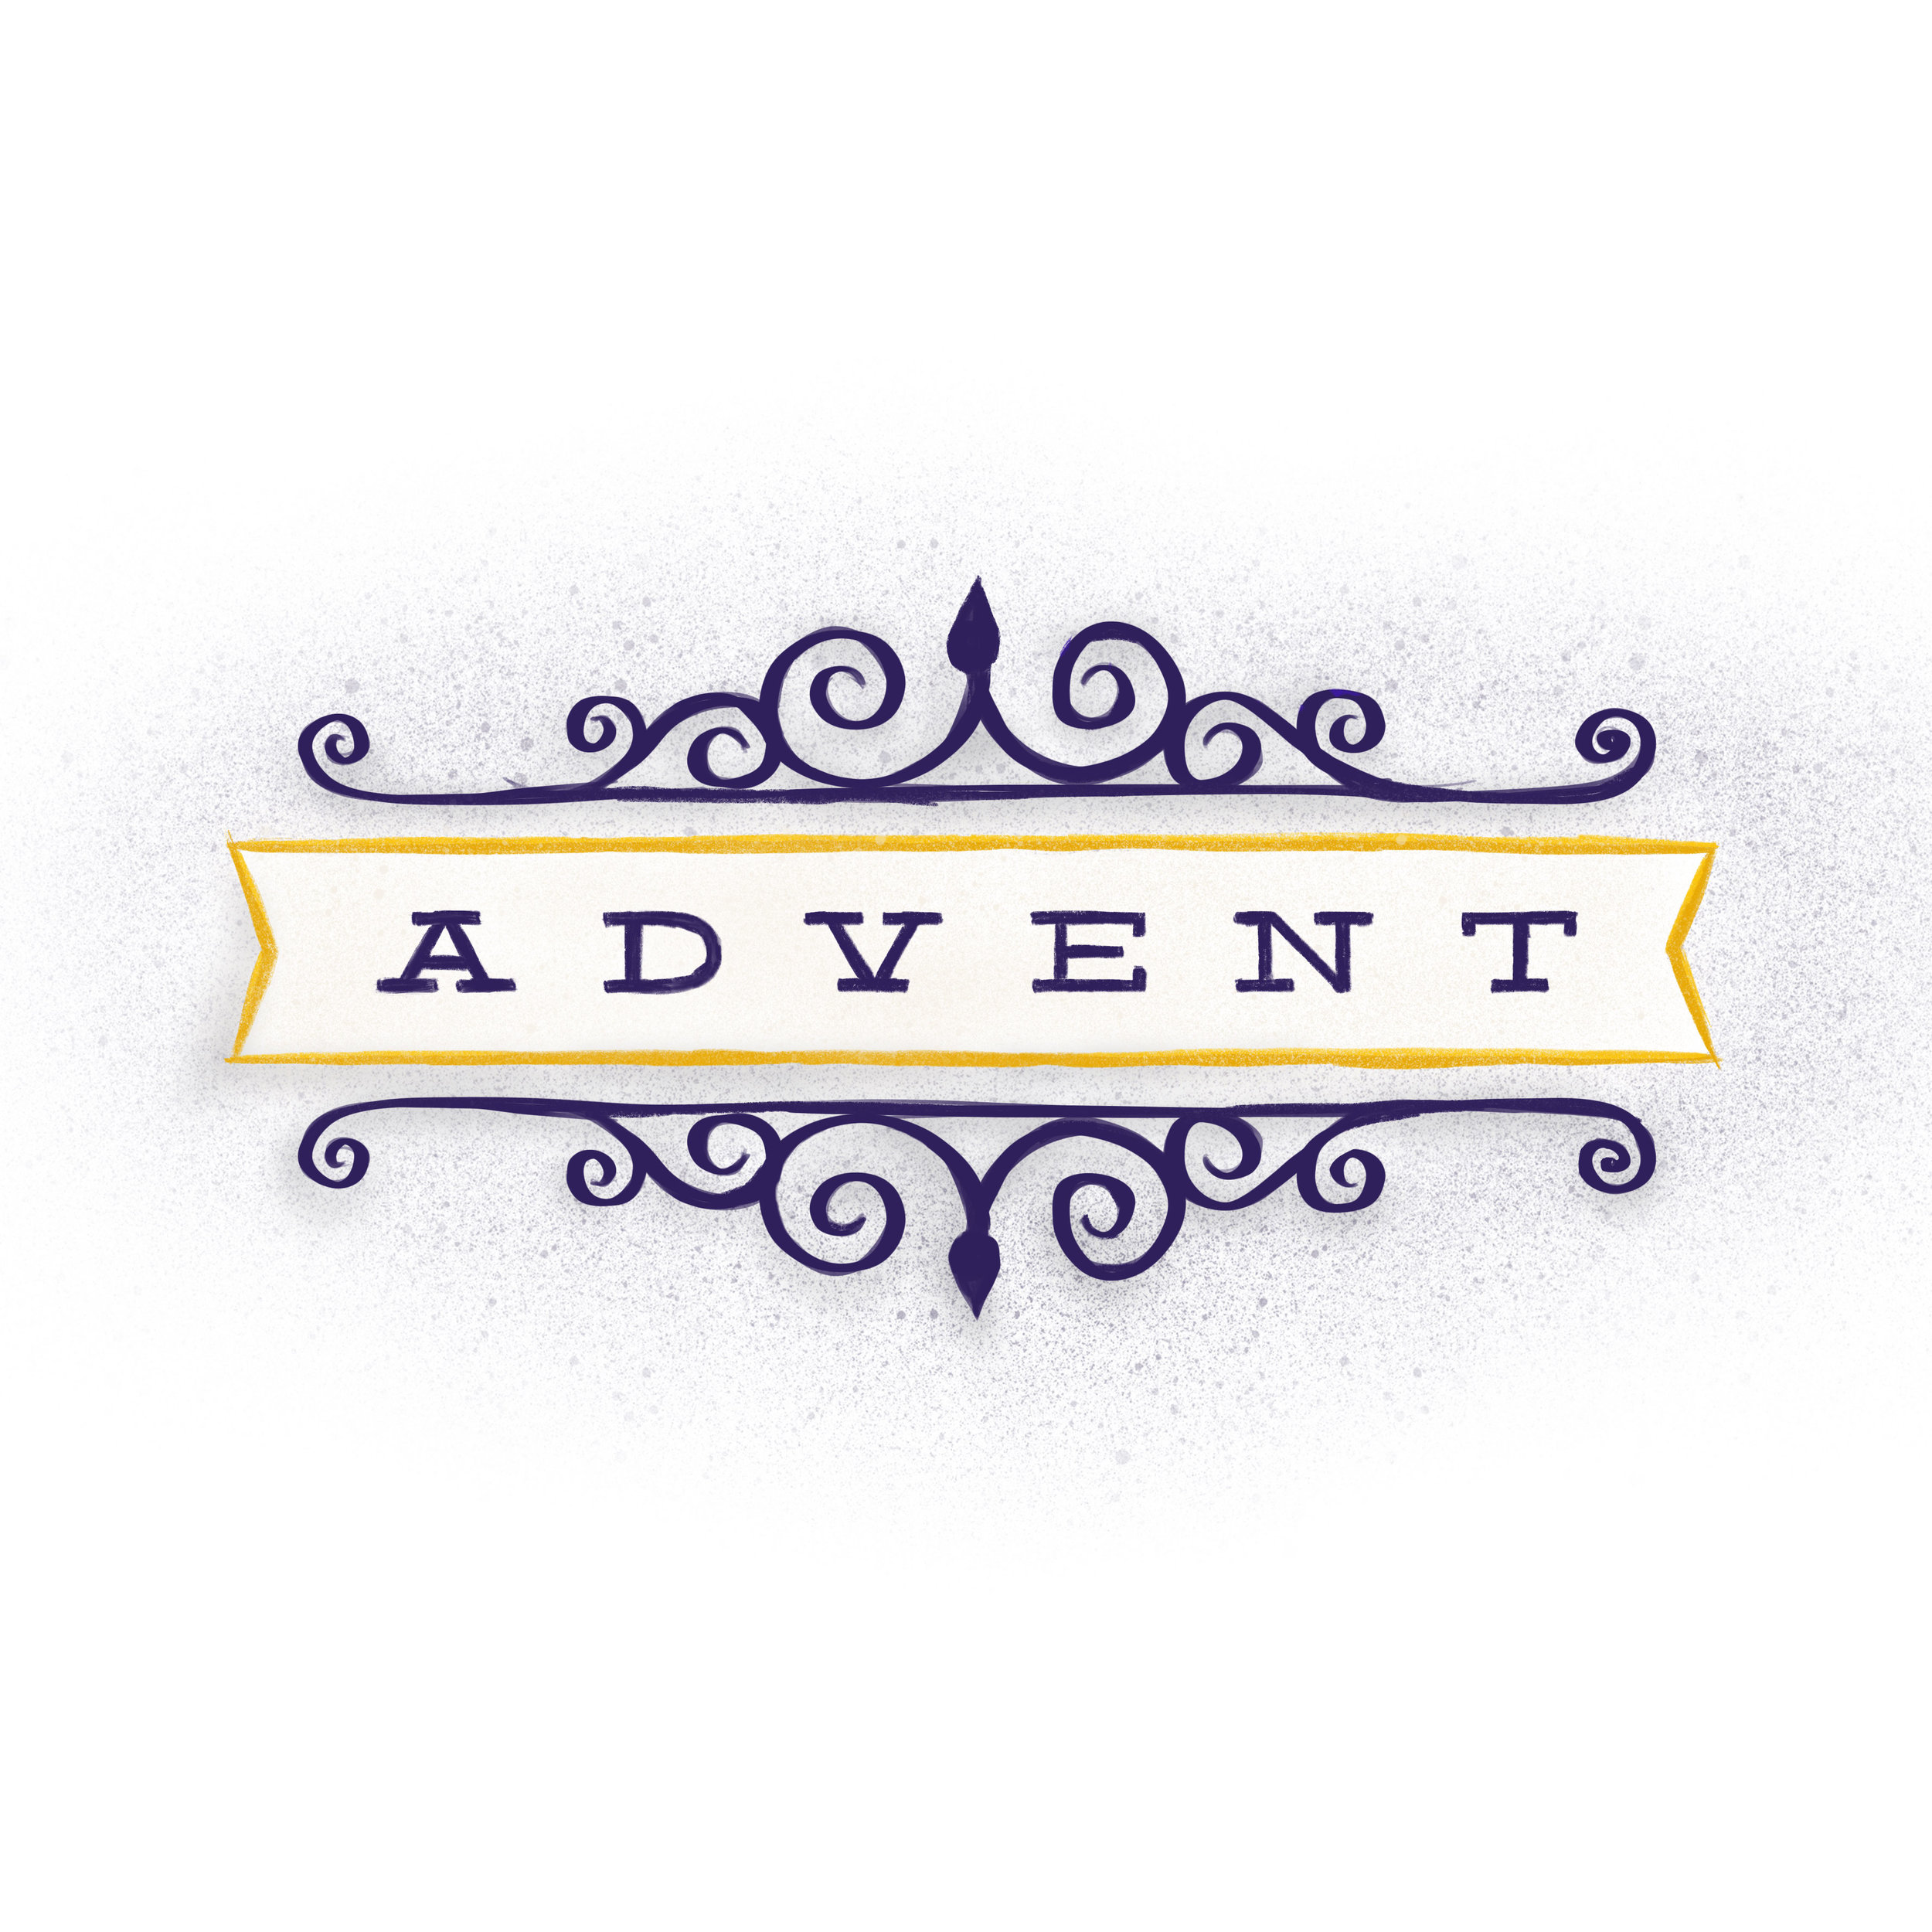 Advent-Hand-Drawn-Square.jpg